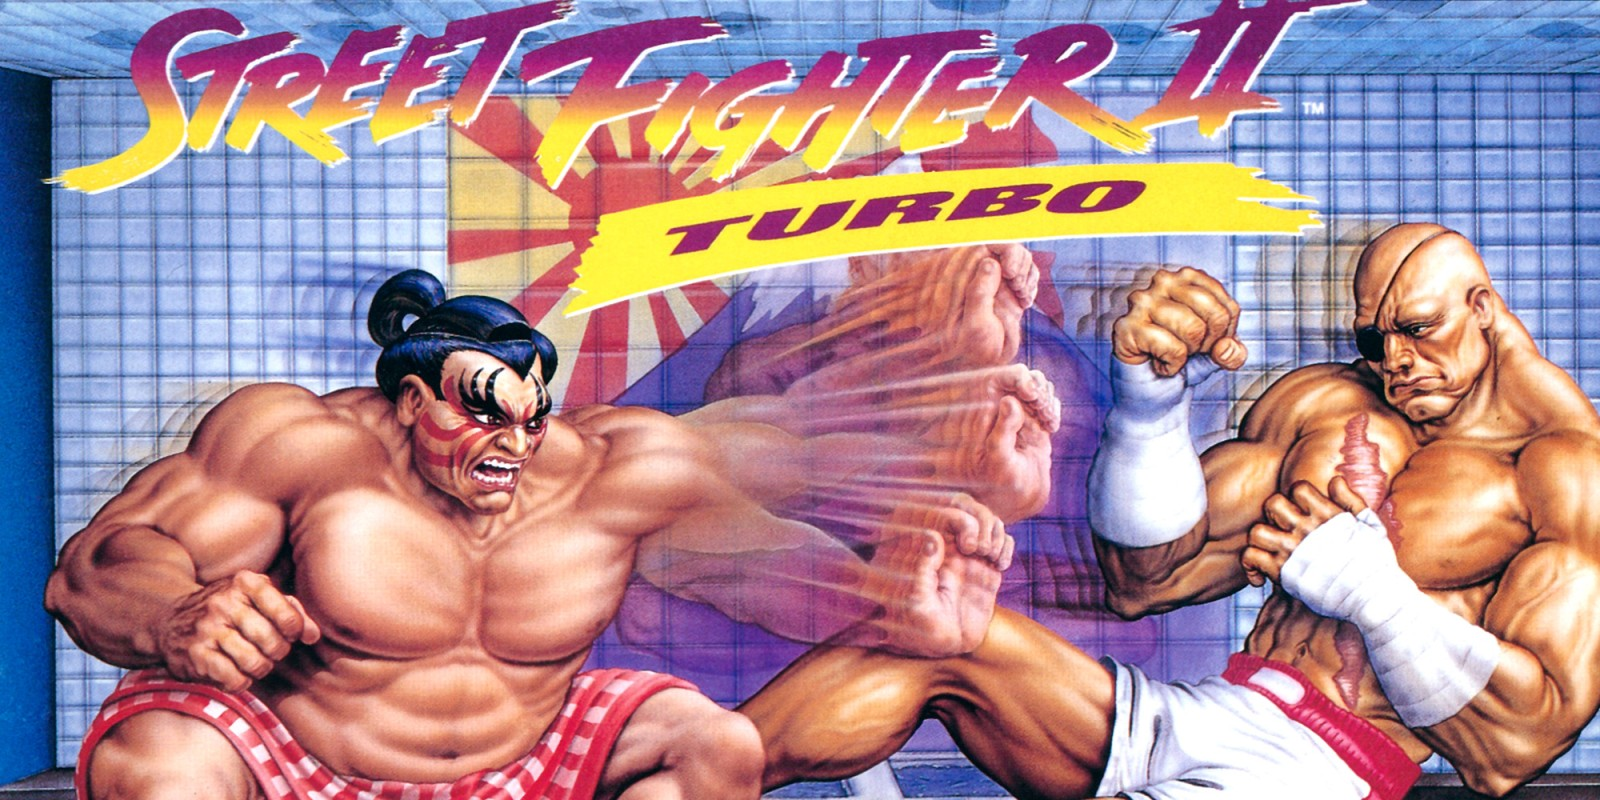 Street Fighter™ II Turbo: Hyper Fighting